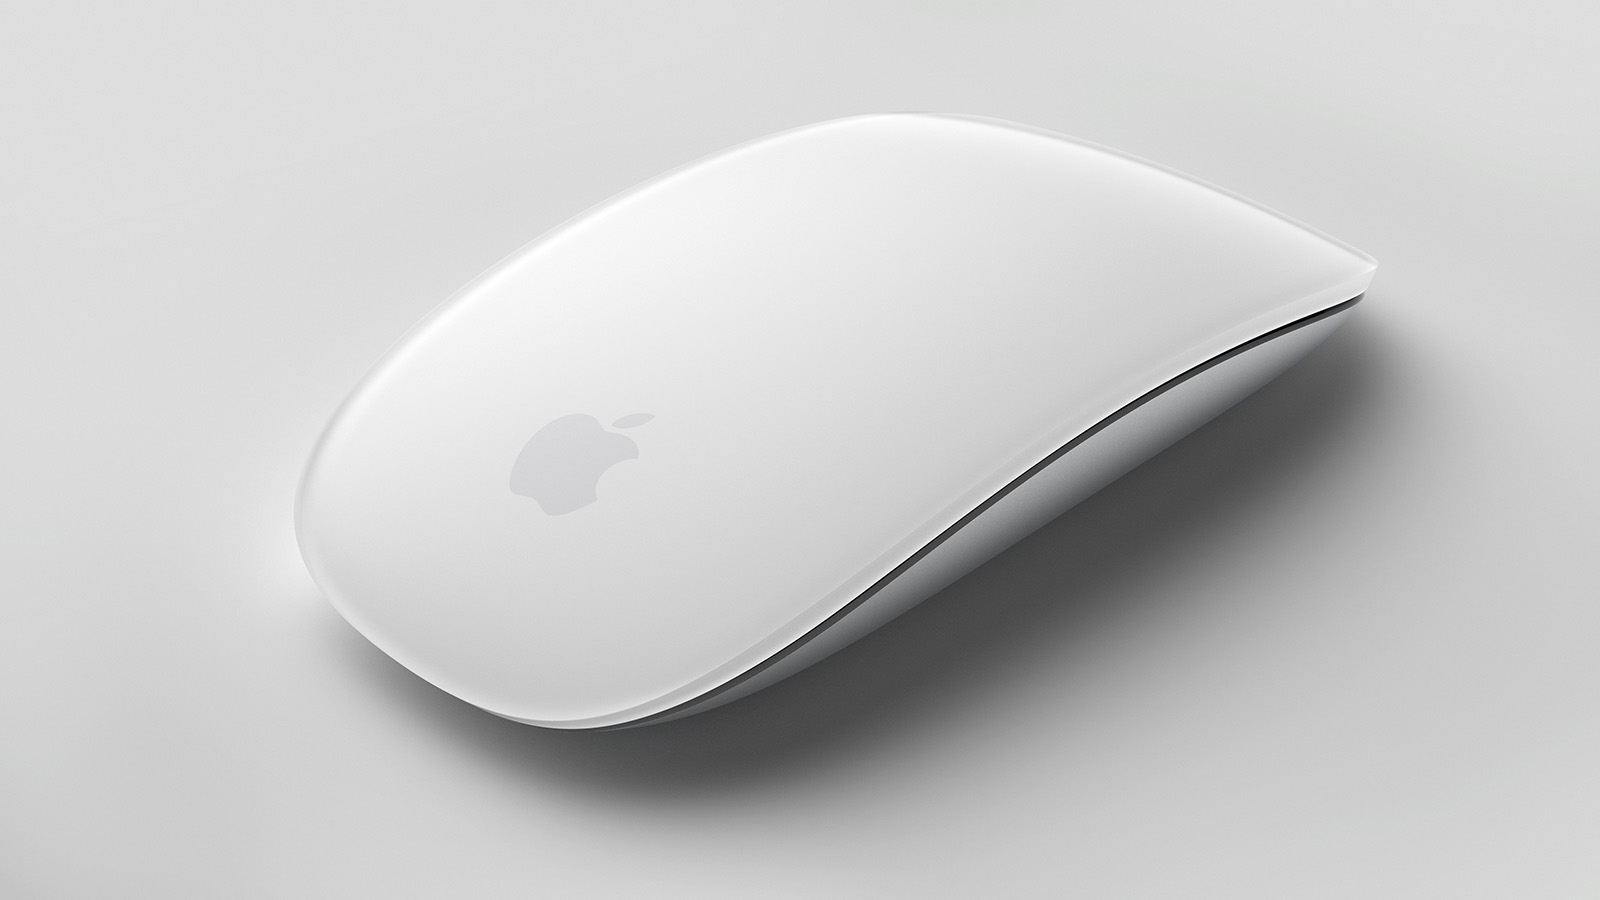 Apple Magic Mouse surfacing/sculpting exercise